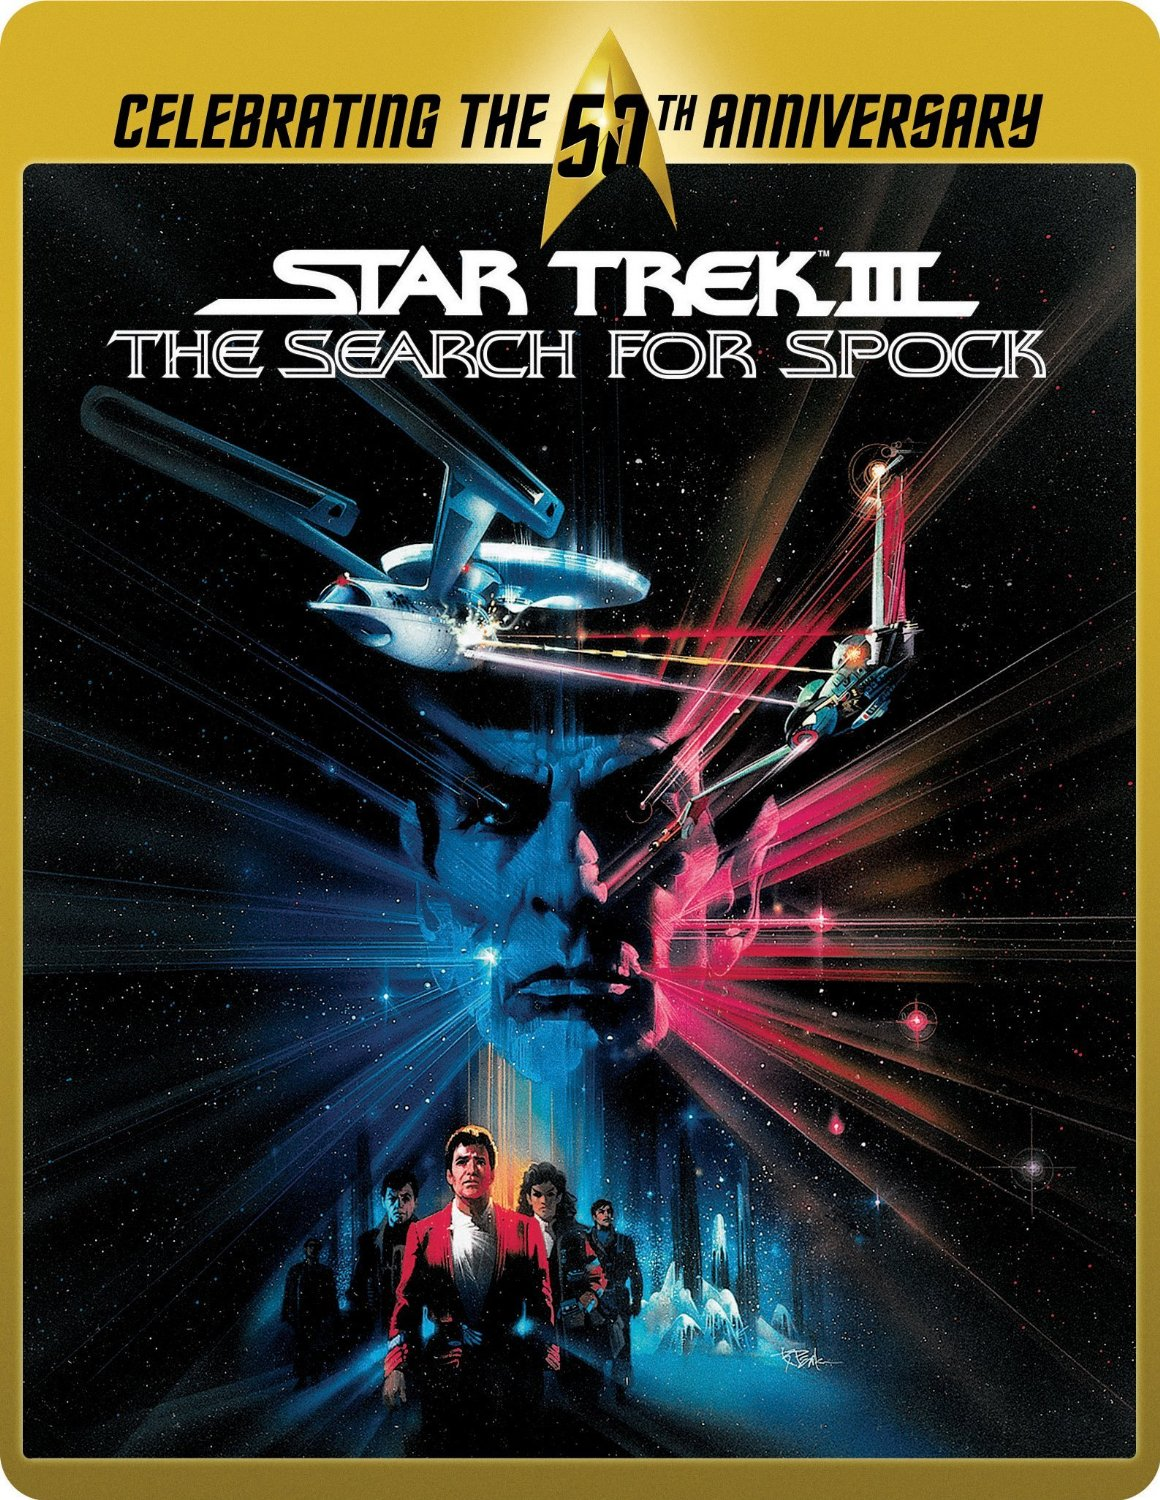 Star Trek III SteelBook